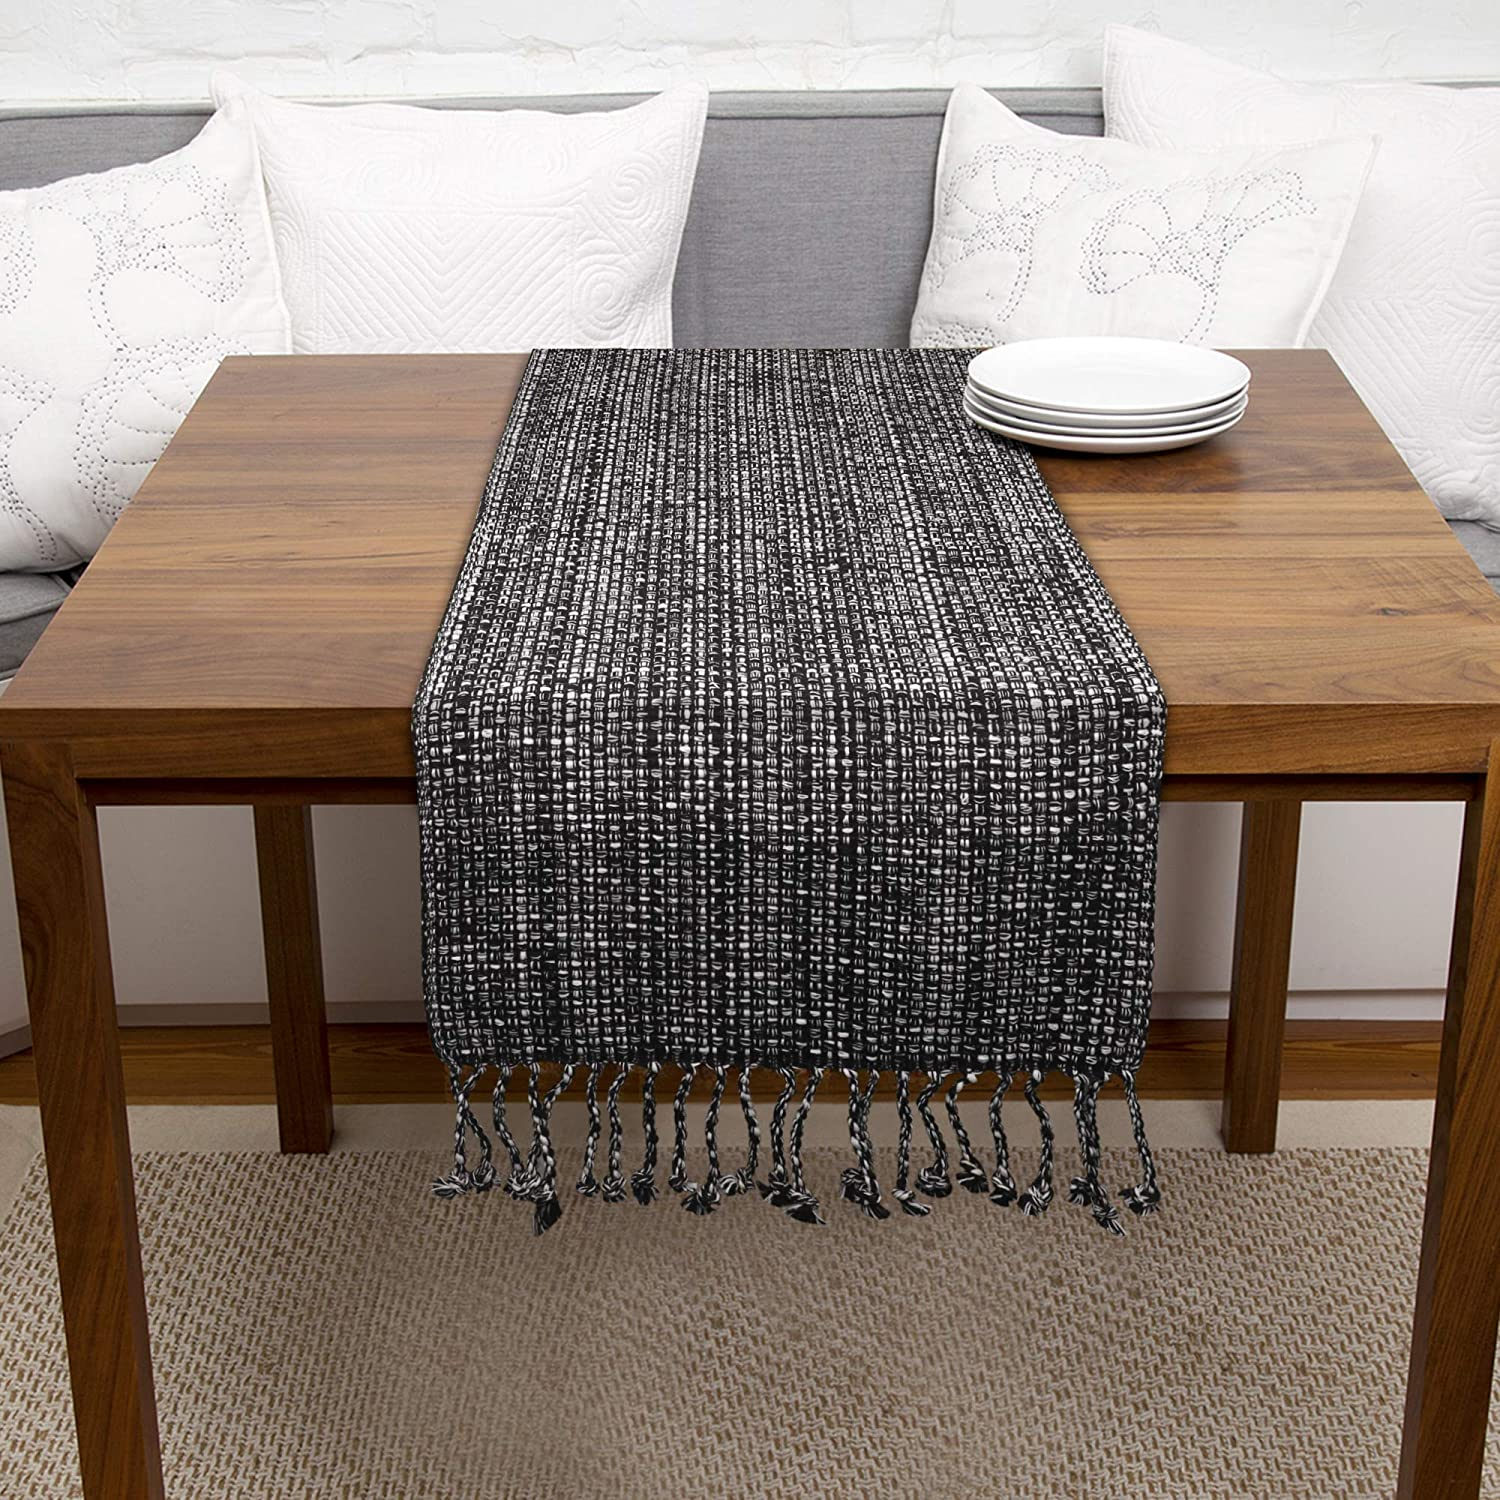 Urban Villa, 100% Cotton Two Tone Table Runner, Christmas Special,14''x 72'' Over Sized,Black/White Two Tone Table Runner with Fringes, Every Day Use,Heavier Quality